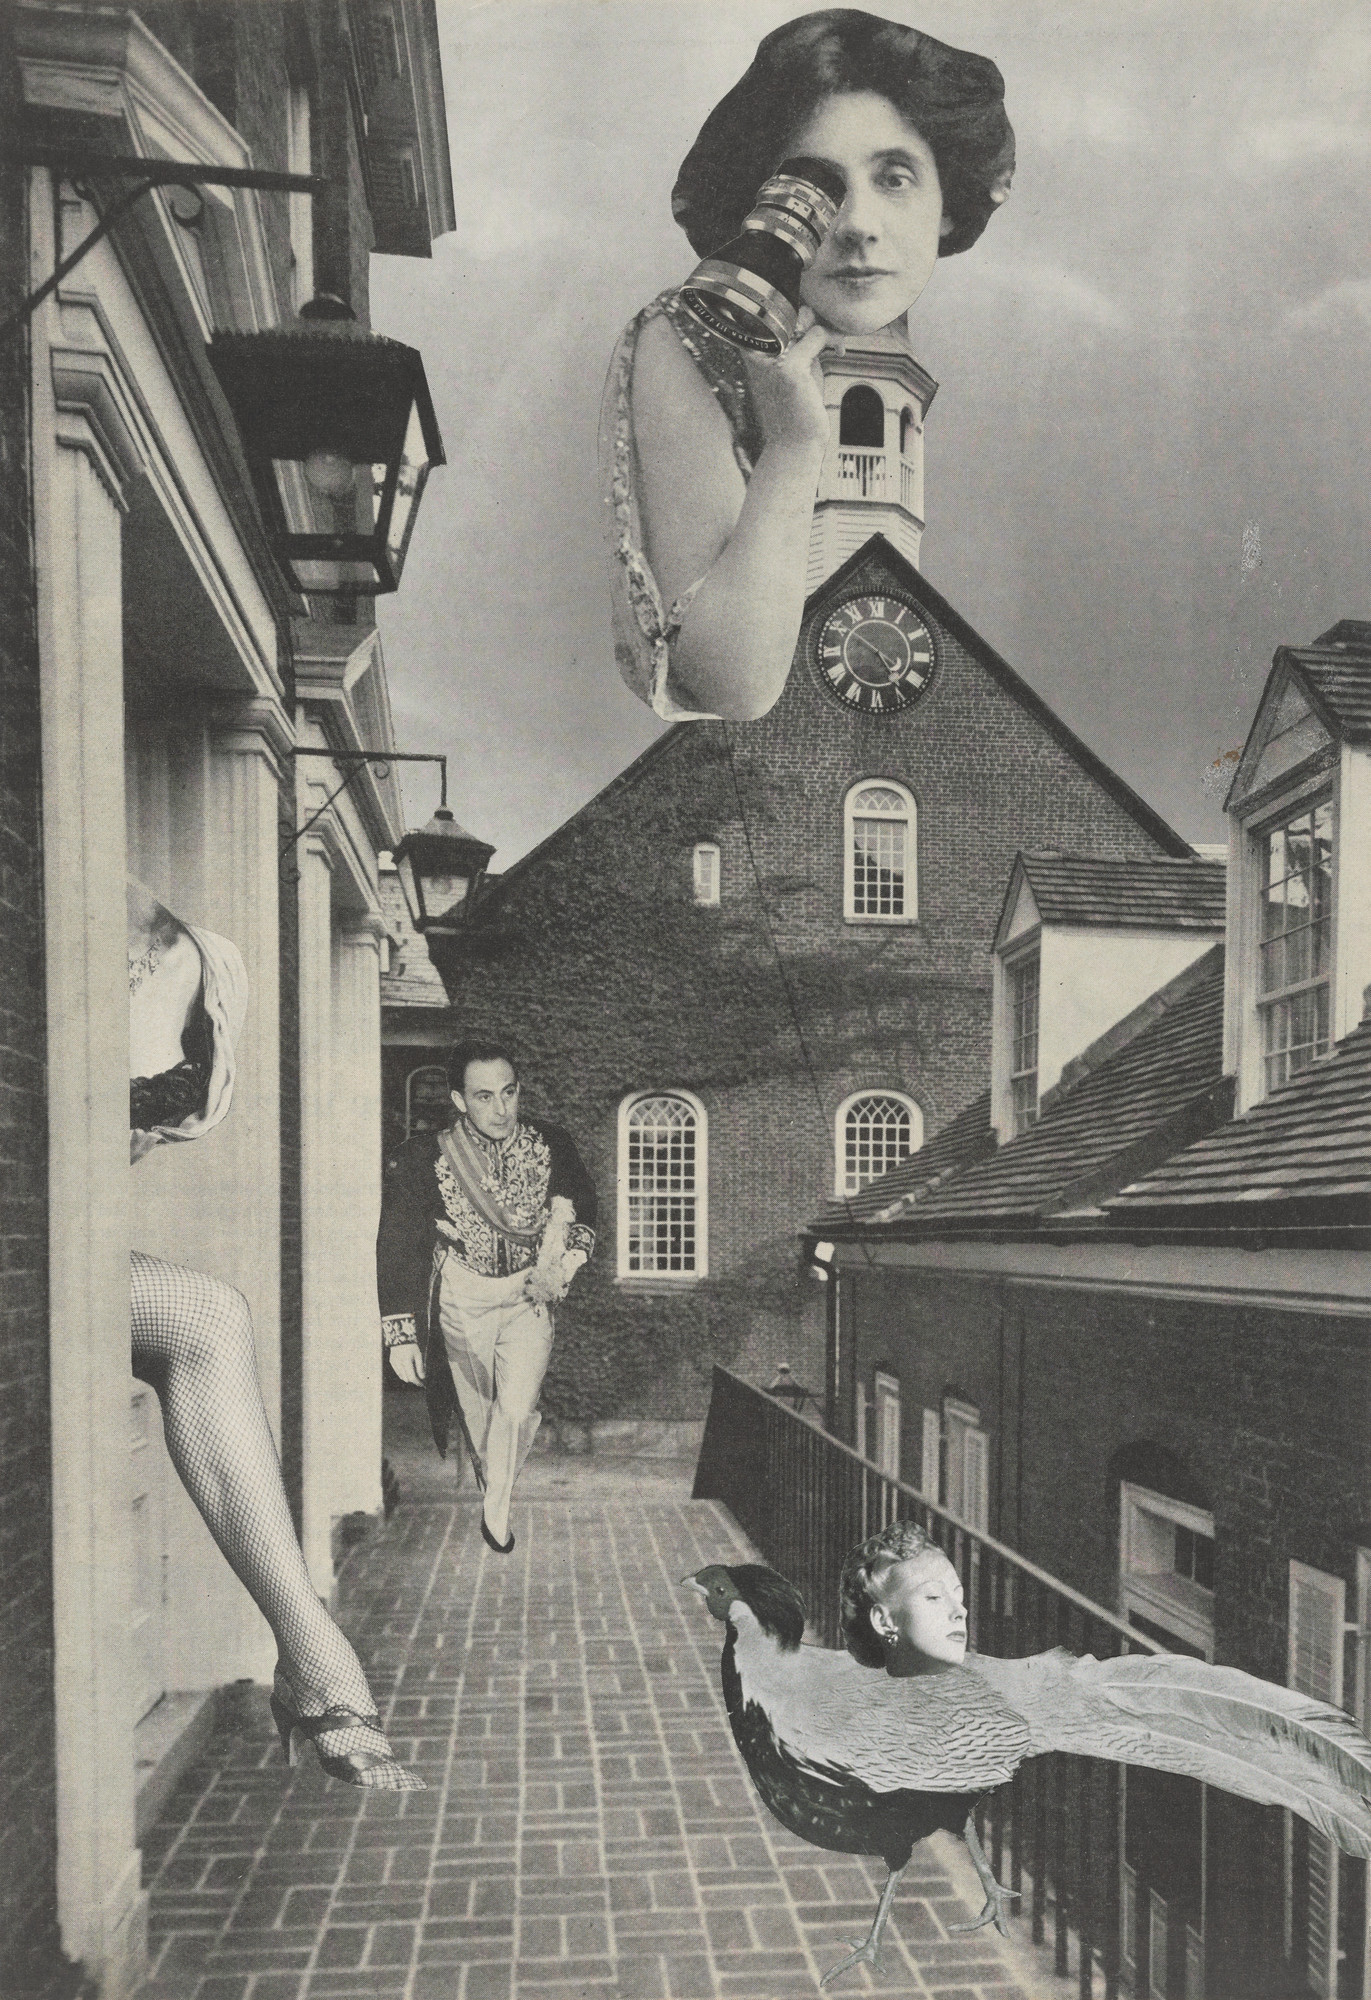 Toshiko Okanoue. In Love. 1953